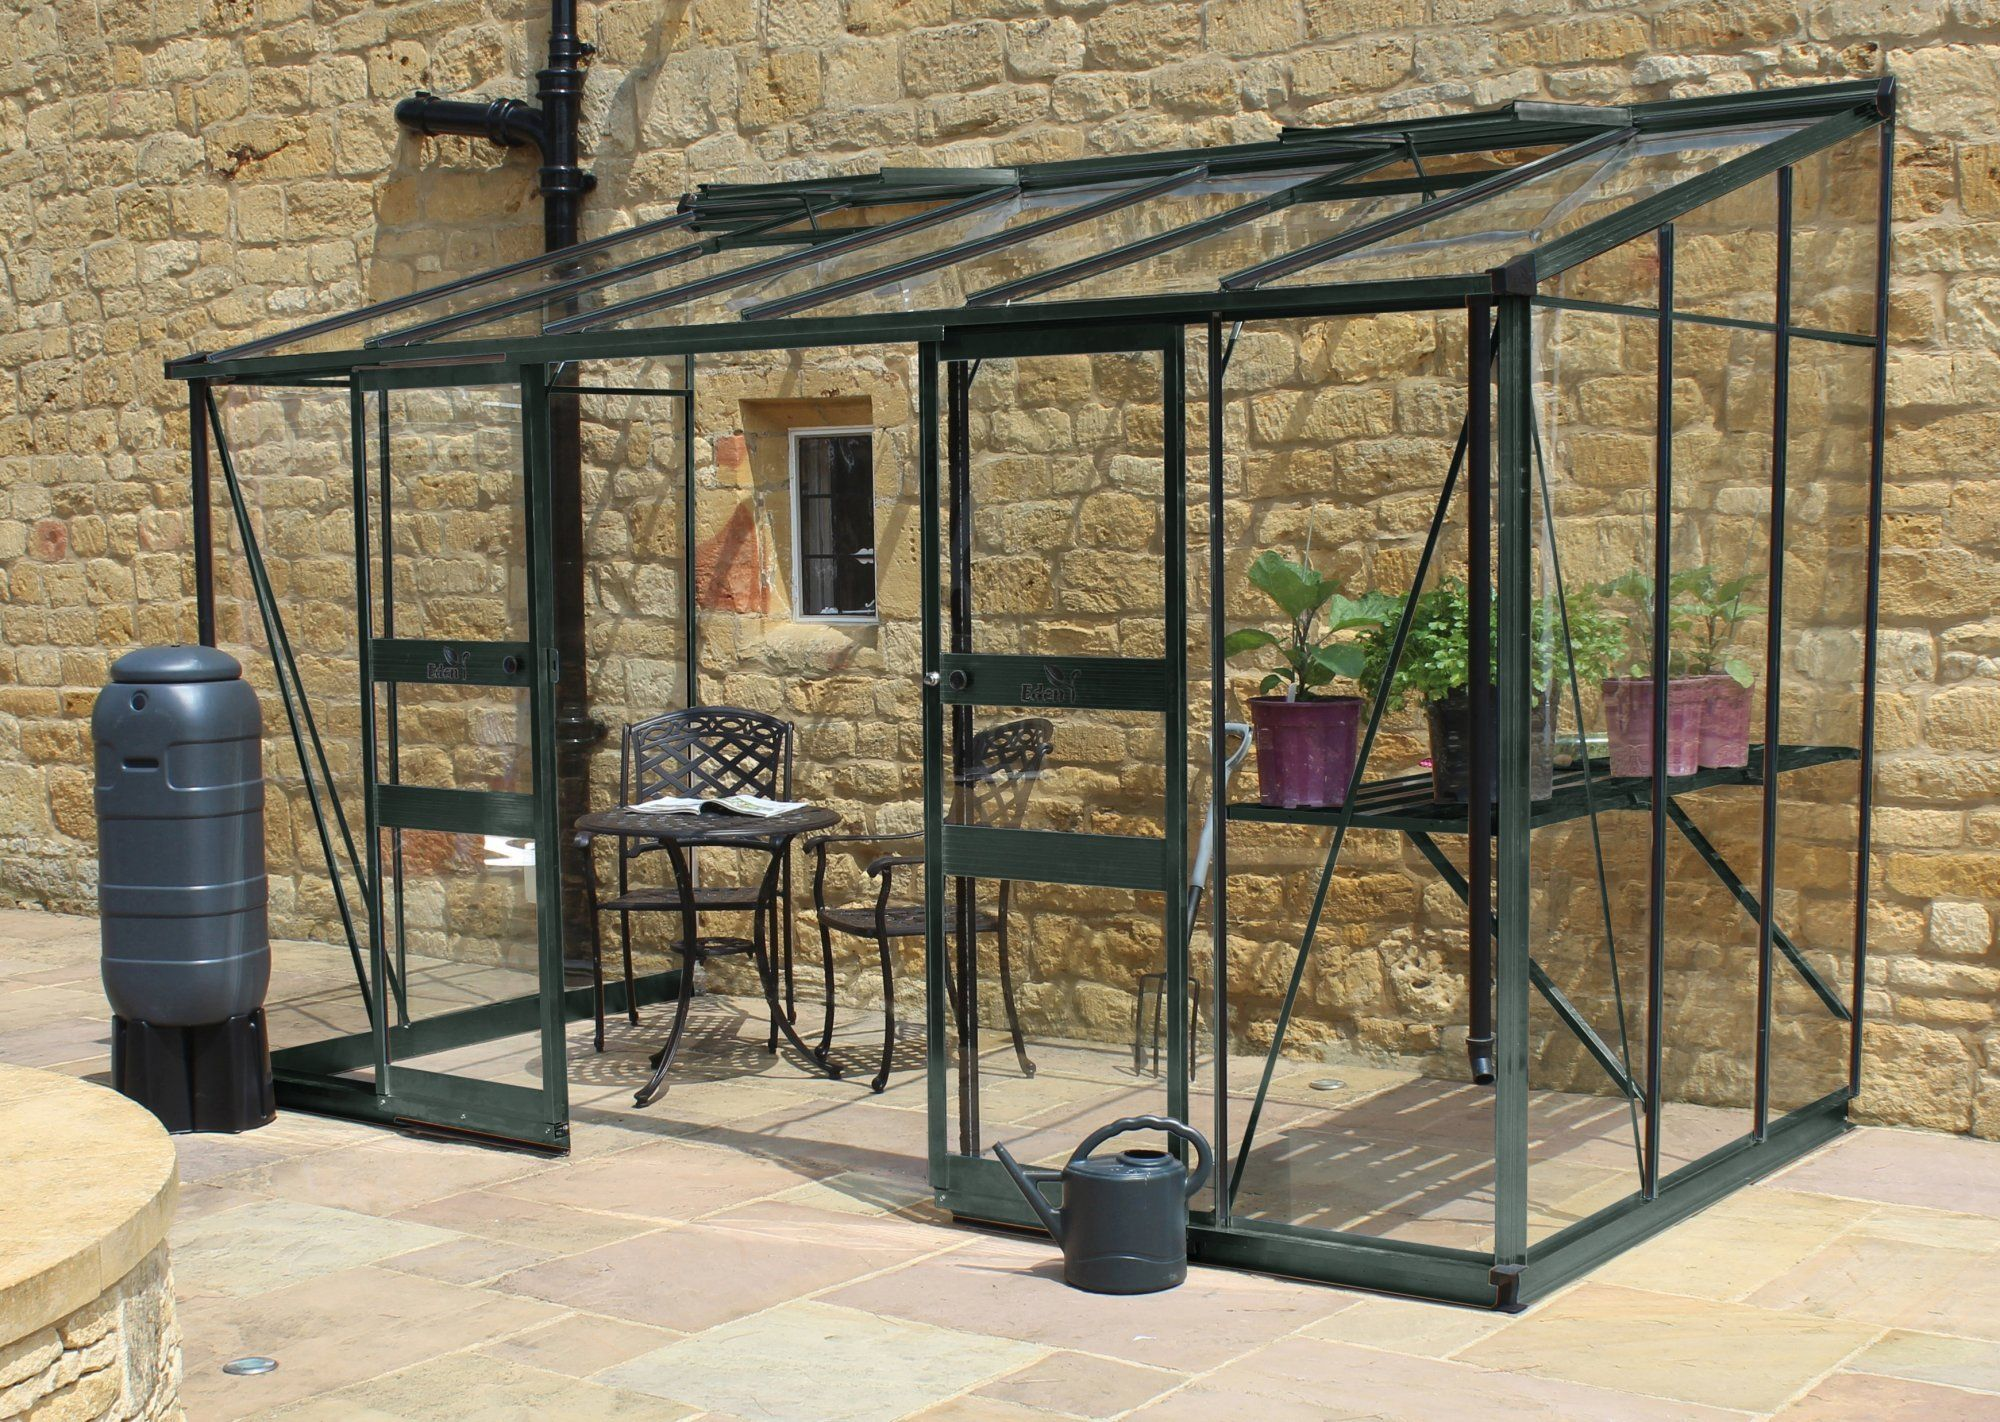 Eden Broadway 12ft x 6ft Lean To Greenhouse with Green Frame ...